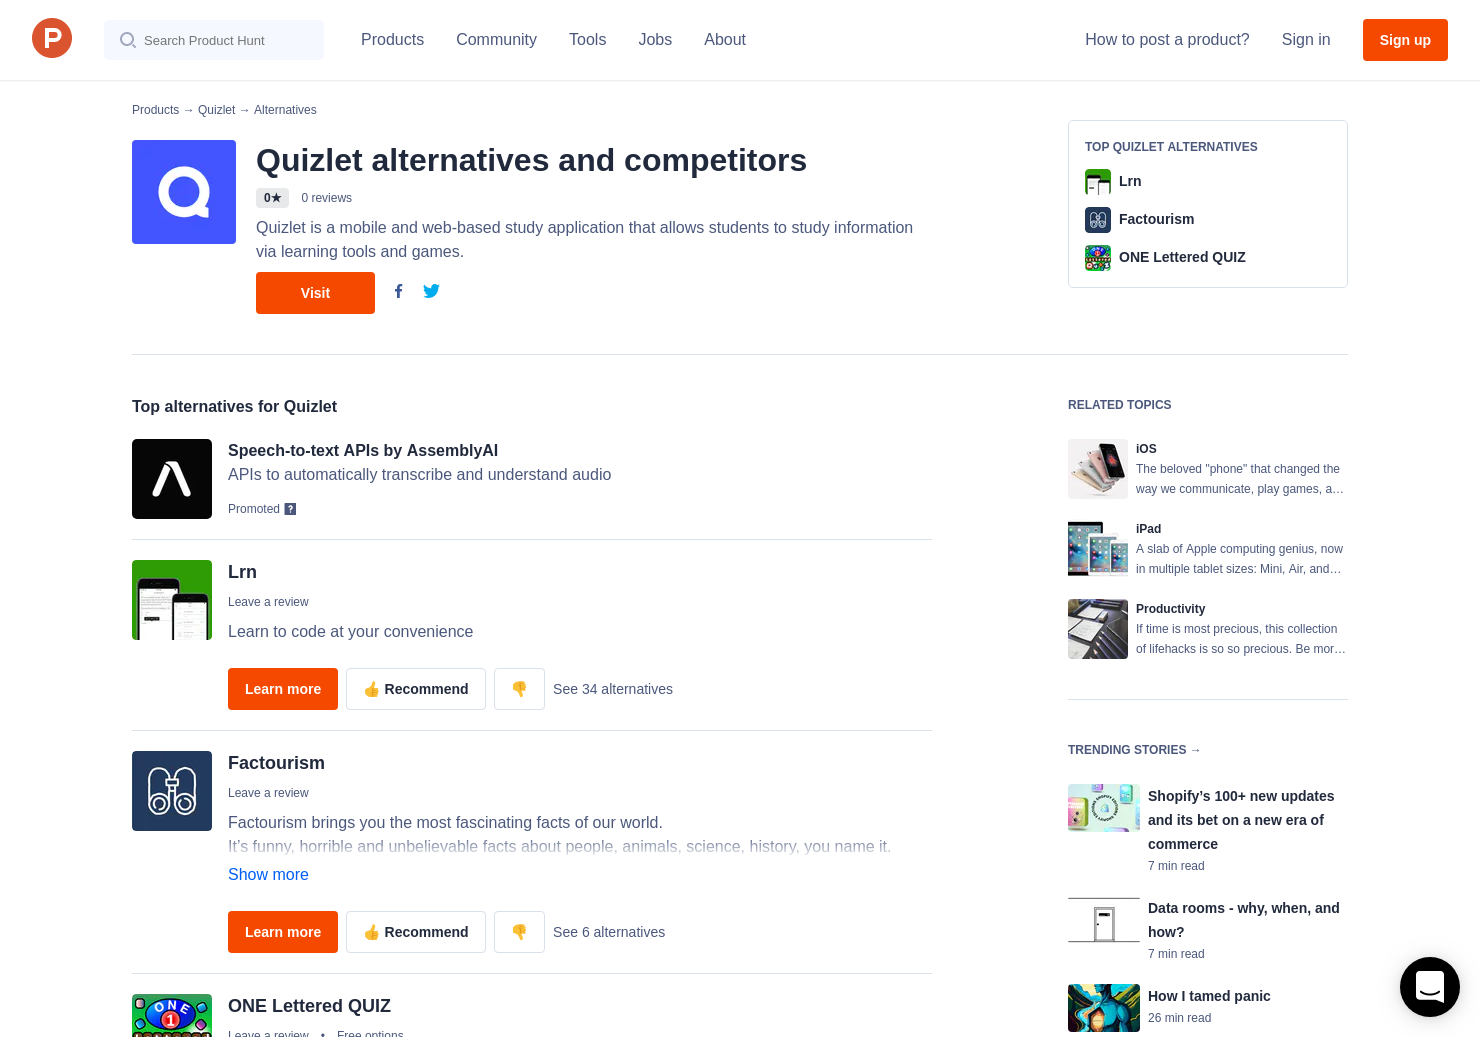 3 Alternatives to Quizlet Learn for iPhone, iPad | Product Hunt